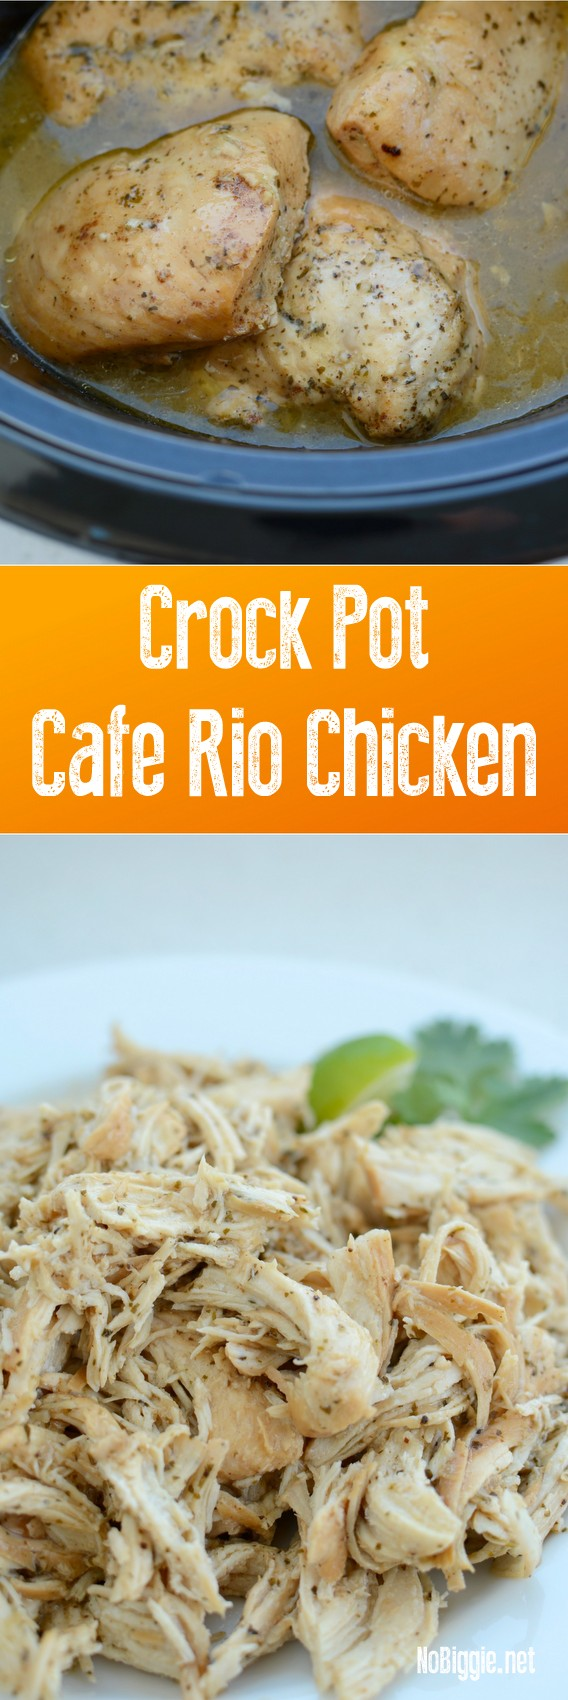 http://www.nobiggie.net/wp-content/uploads/2016/08/Crock-Pot-CafeRio-Chicken.jpg